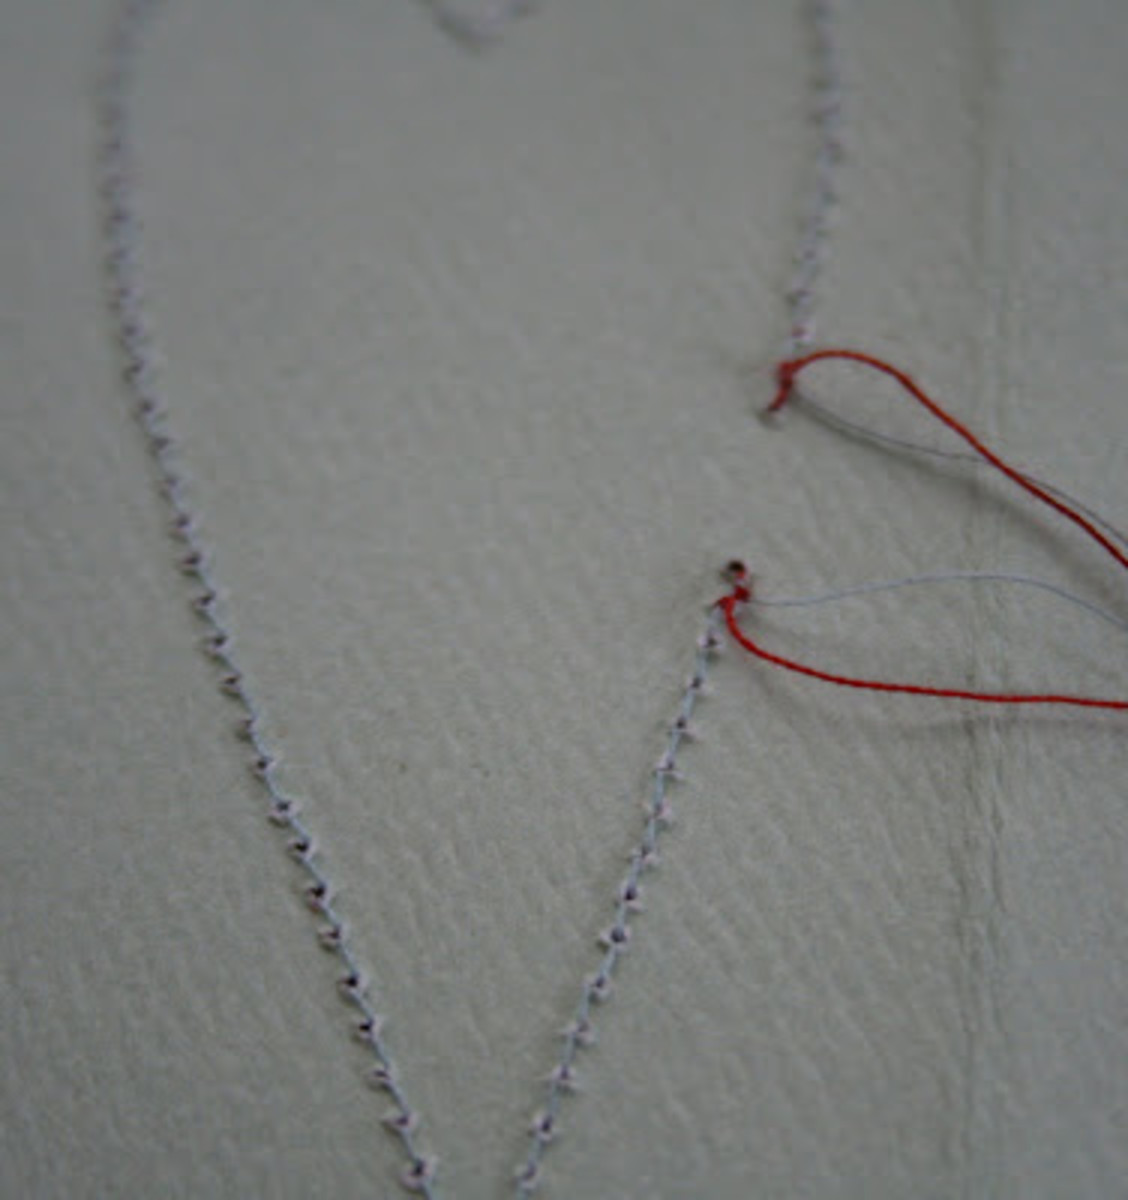 Julie uses two different colors of thread for this project and then ties the threads together on the back side of her work.